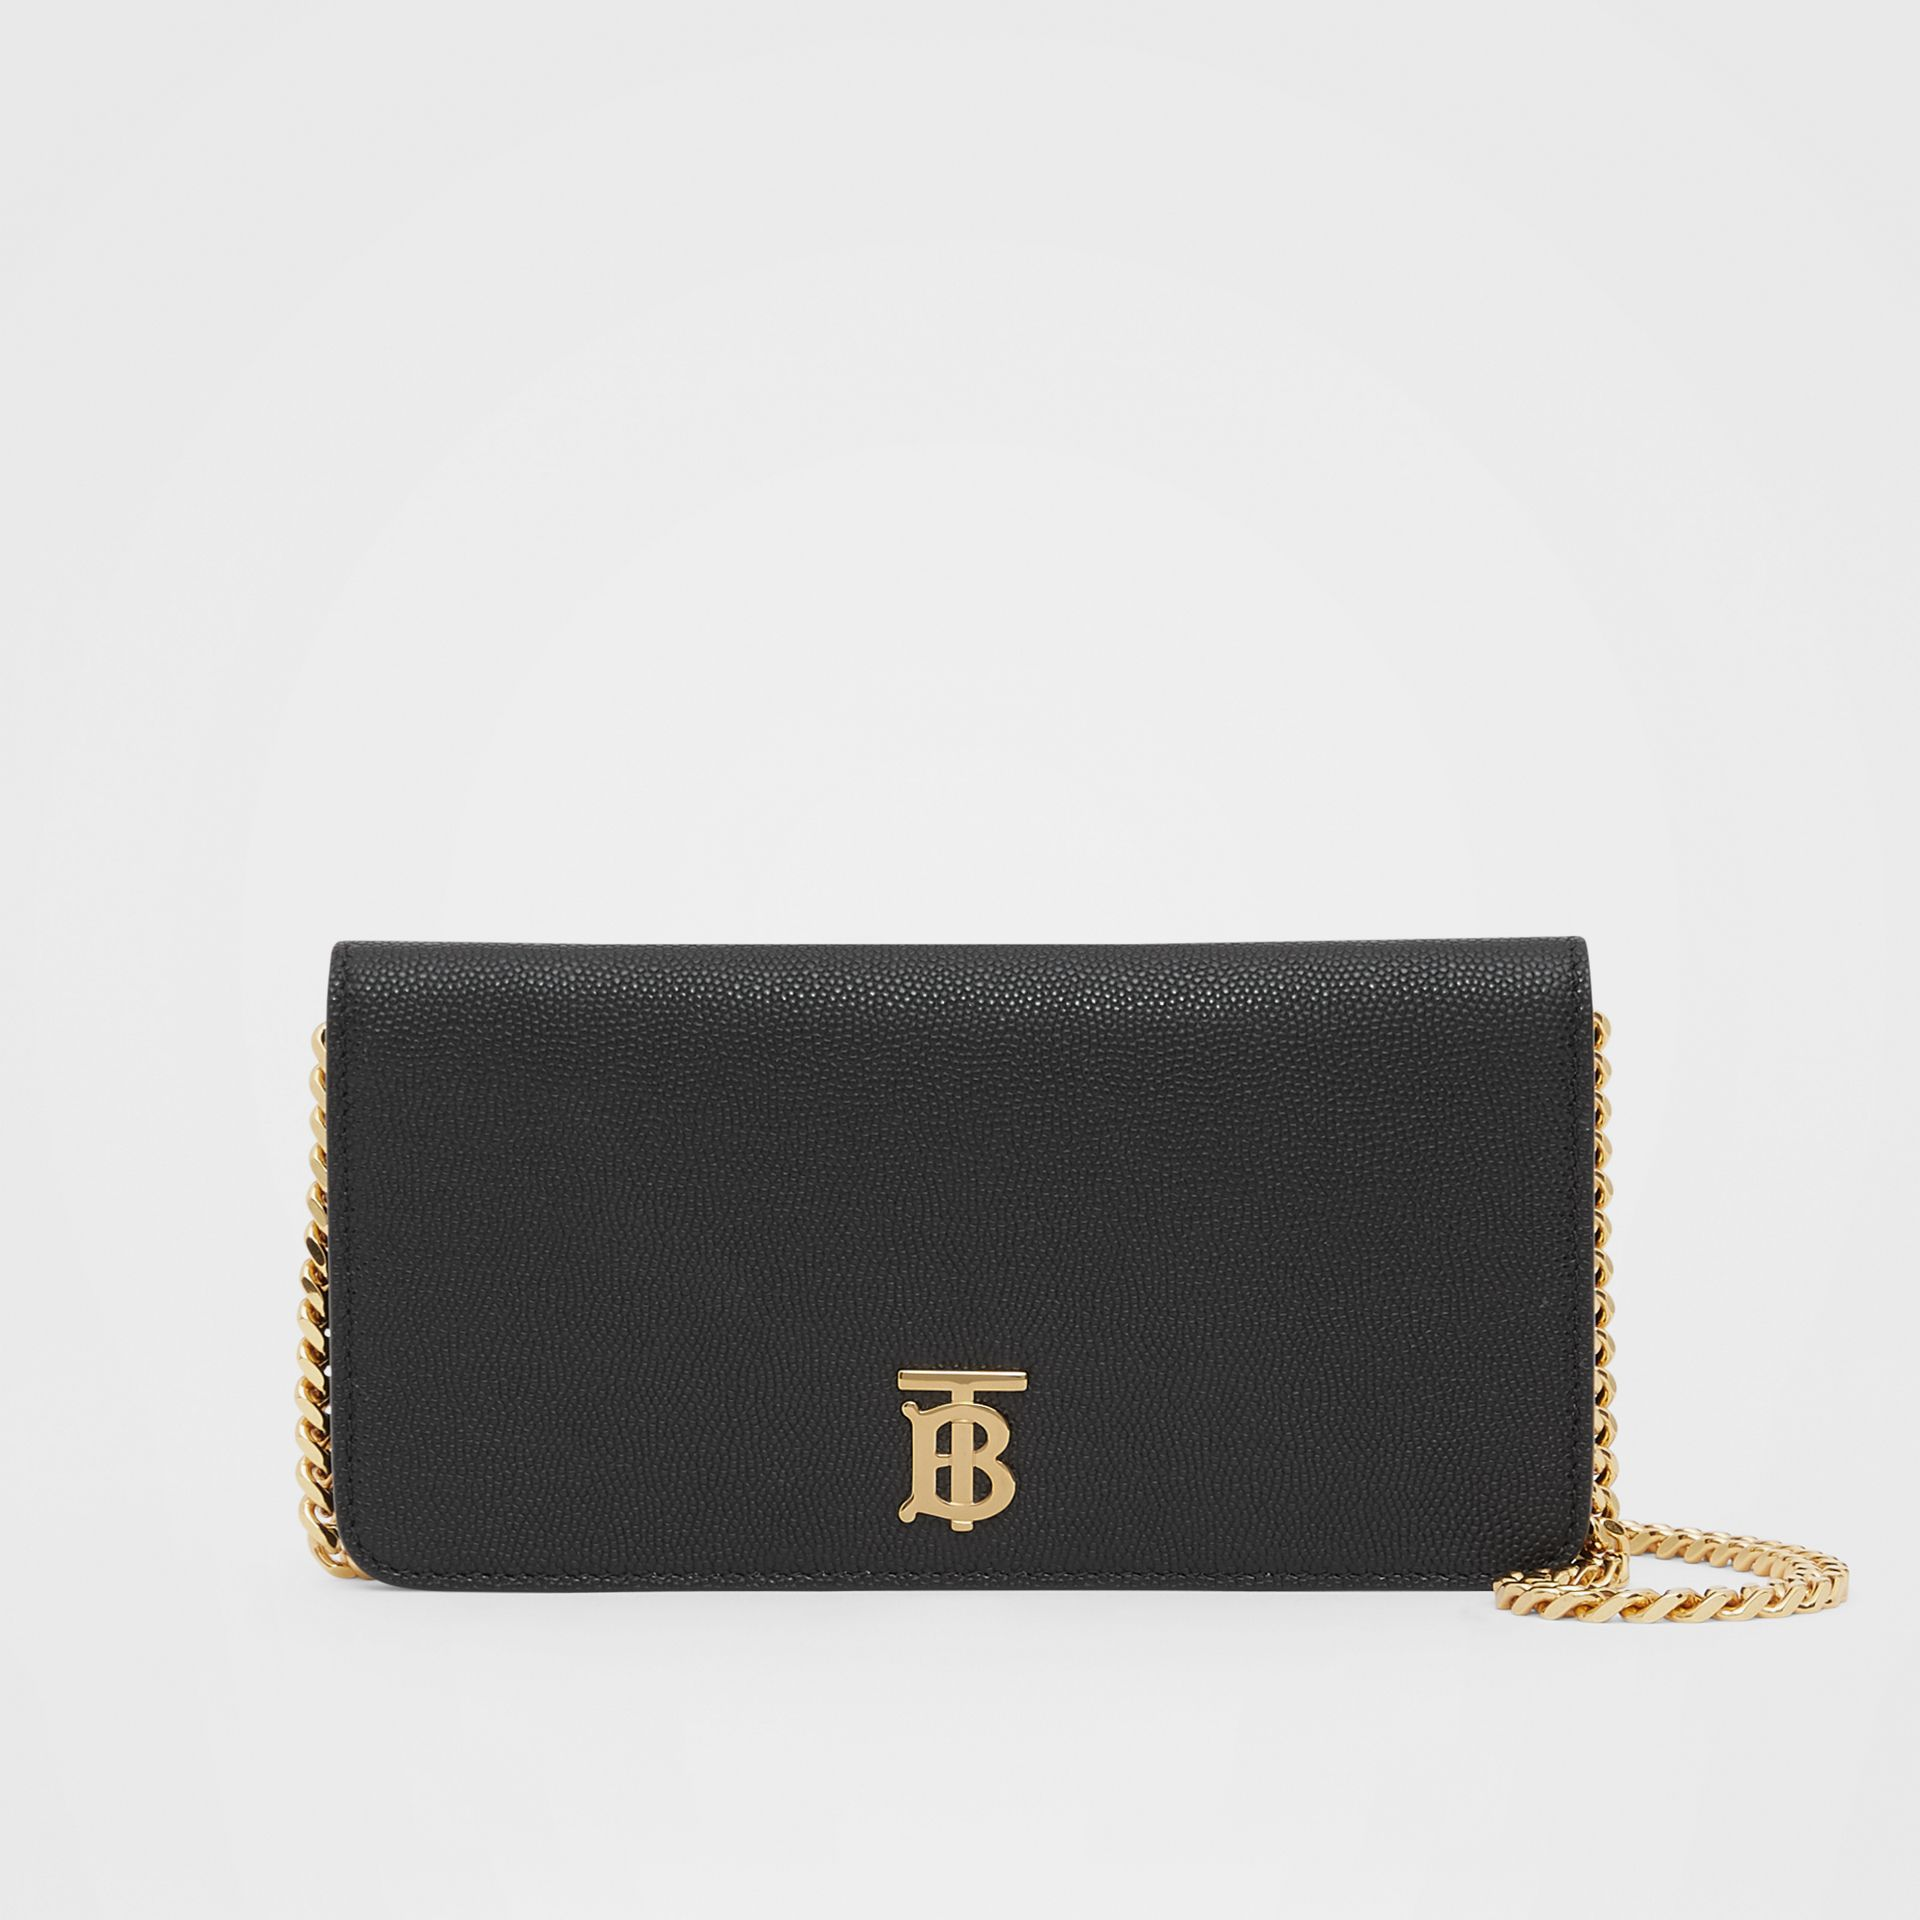 Grainy Leather Phone Wallet with Strap in Black - Women | Burberry United States - gallery image 0